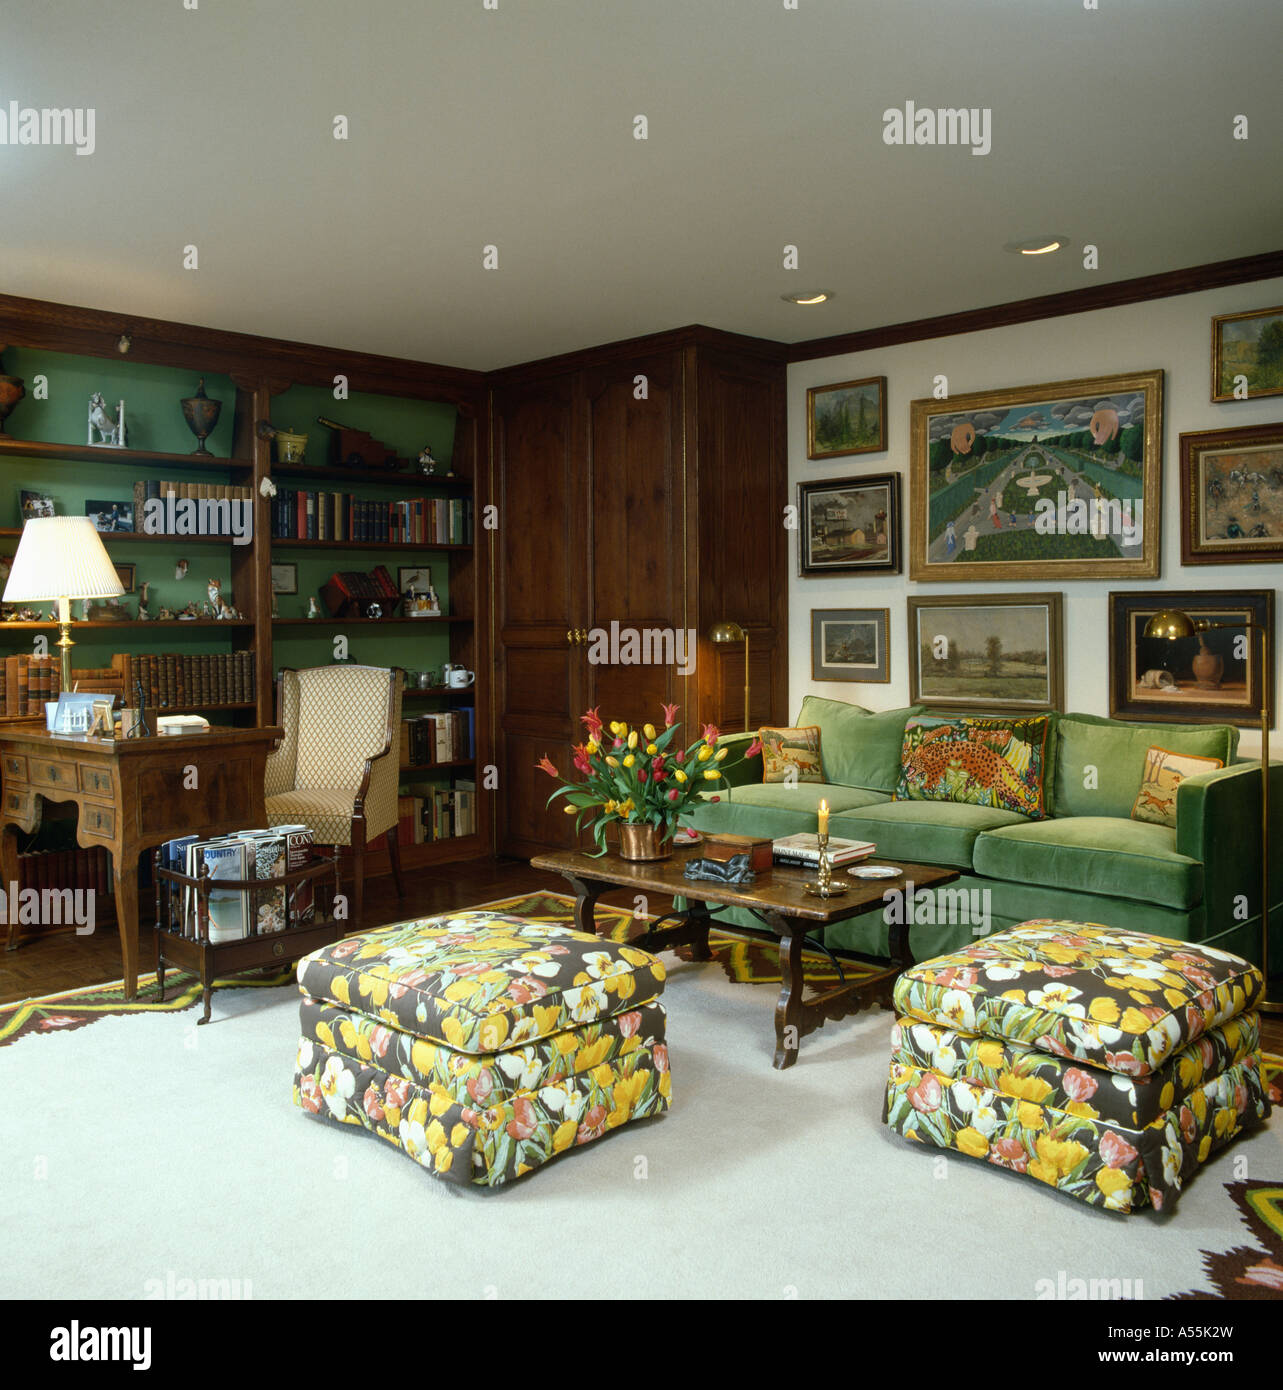 Floral print upholstered stools and green velour sofa below group of pictures in eighties living room with pale gray carpet